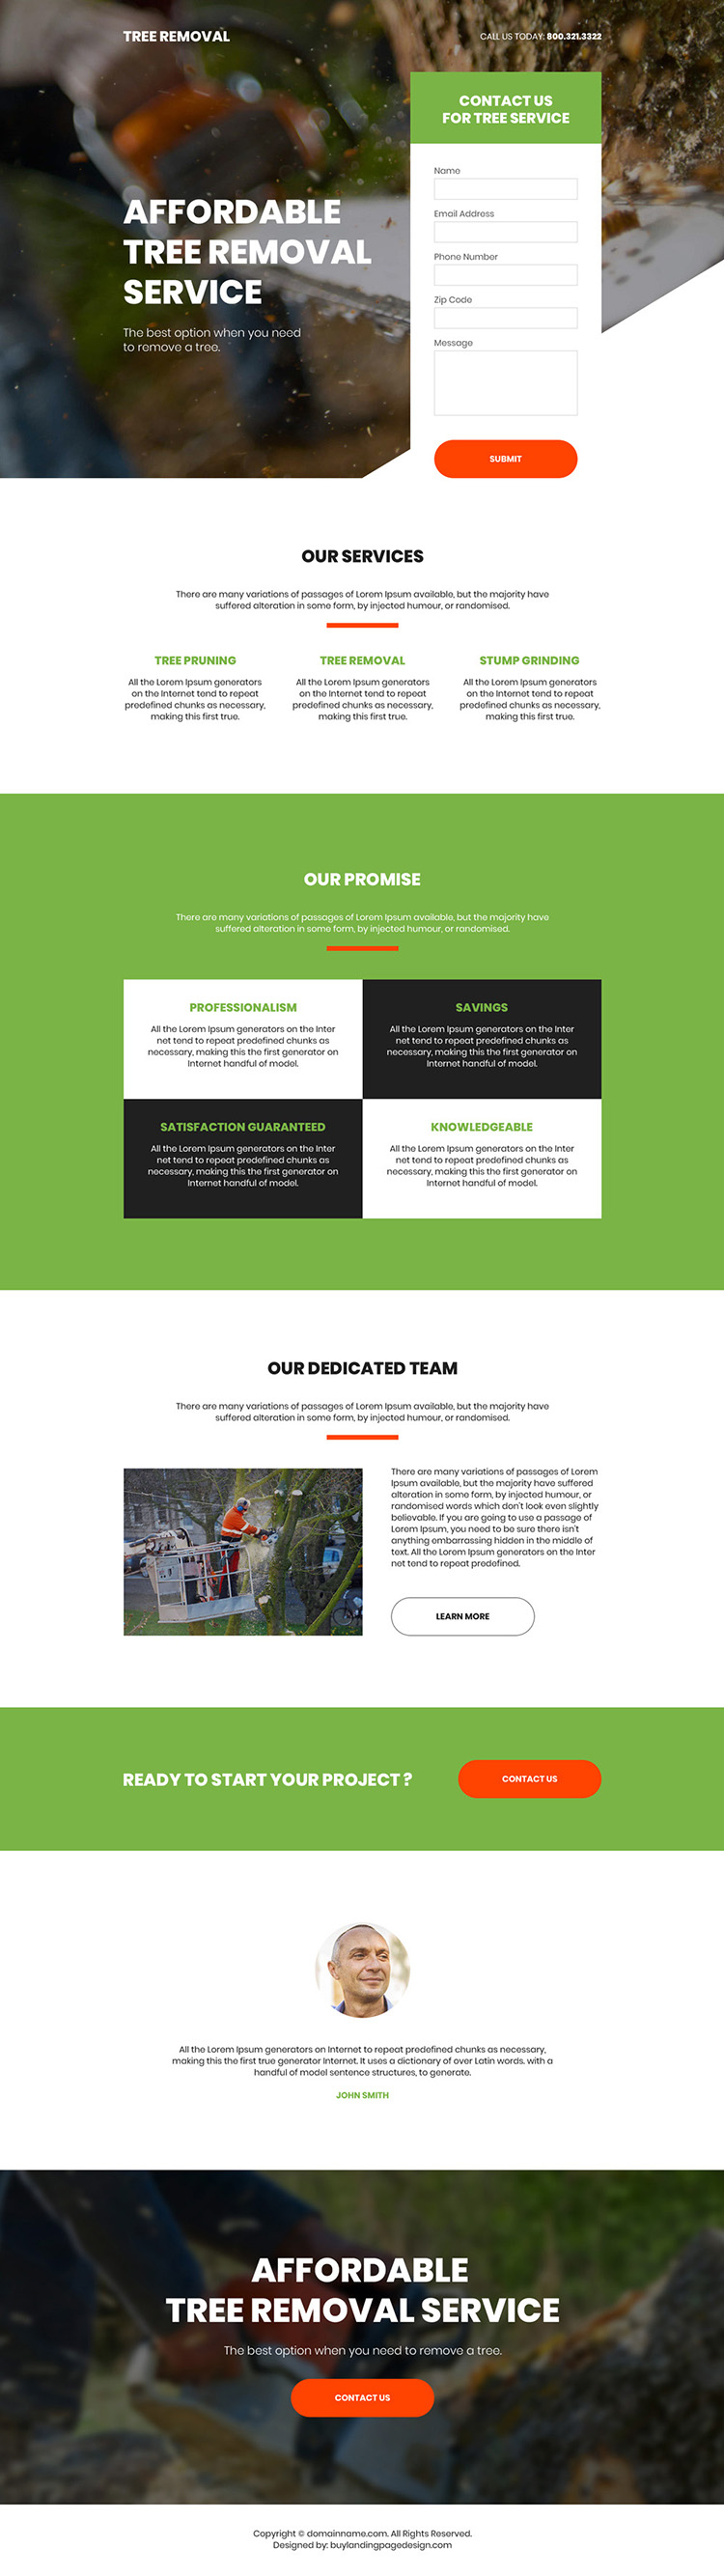 affordable tree removal service lead generating bootstrap landing page